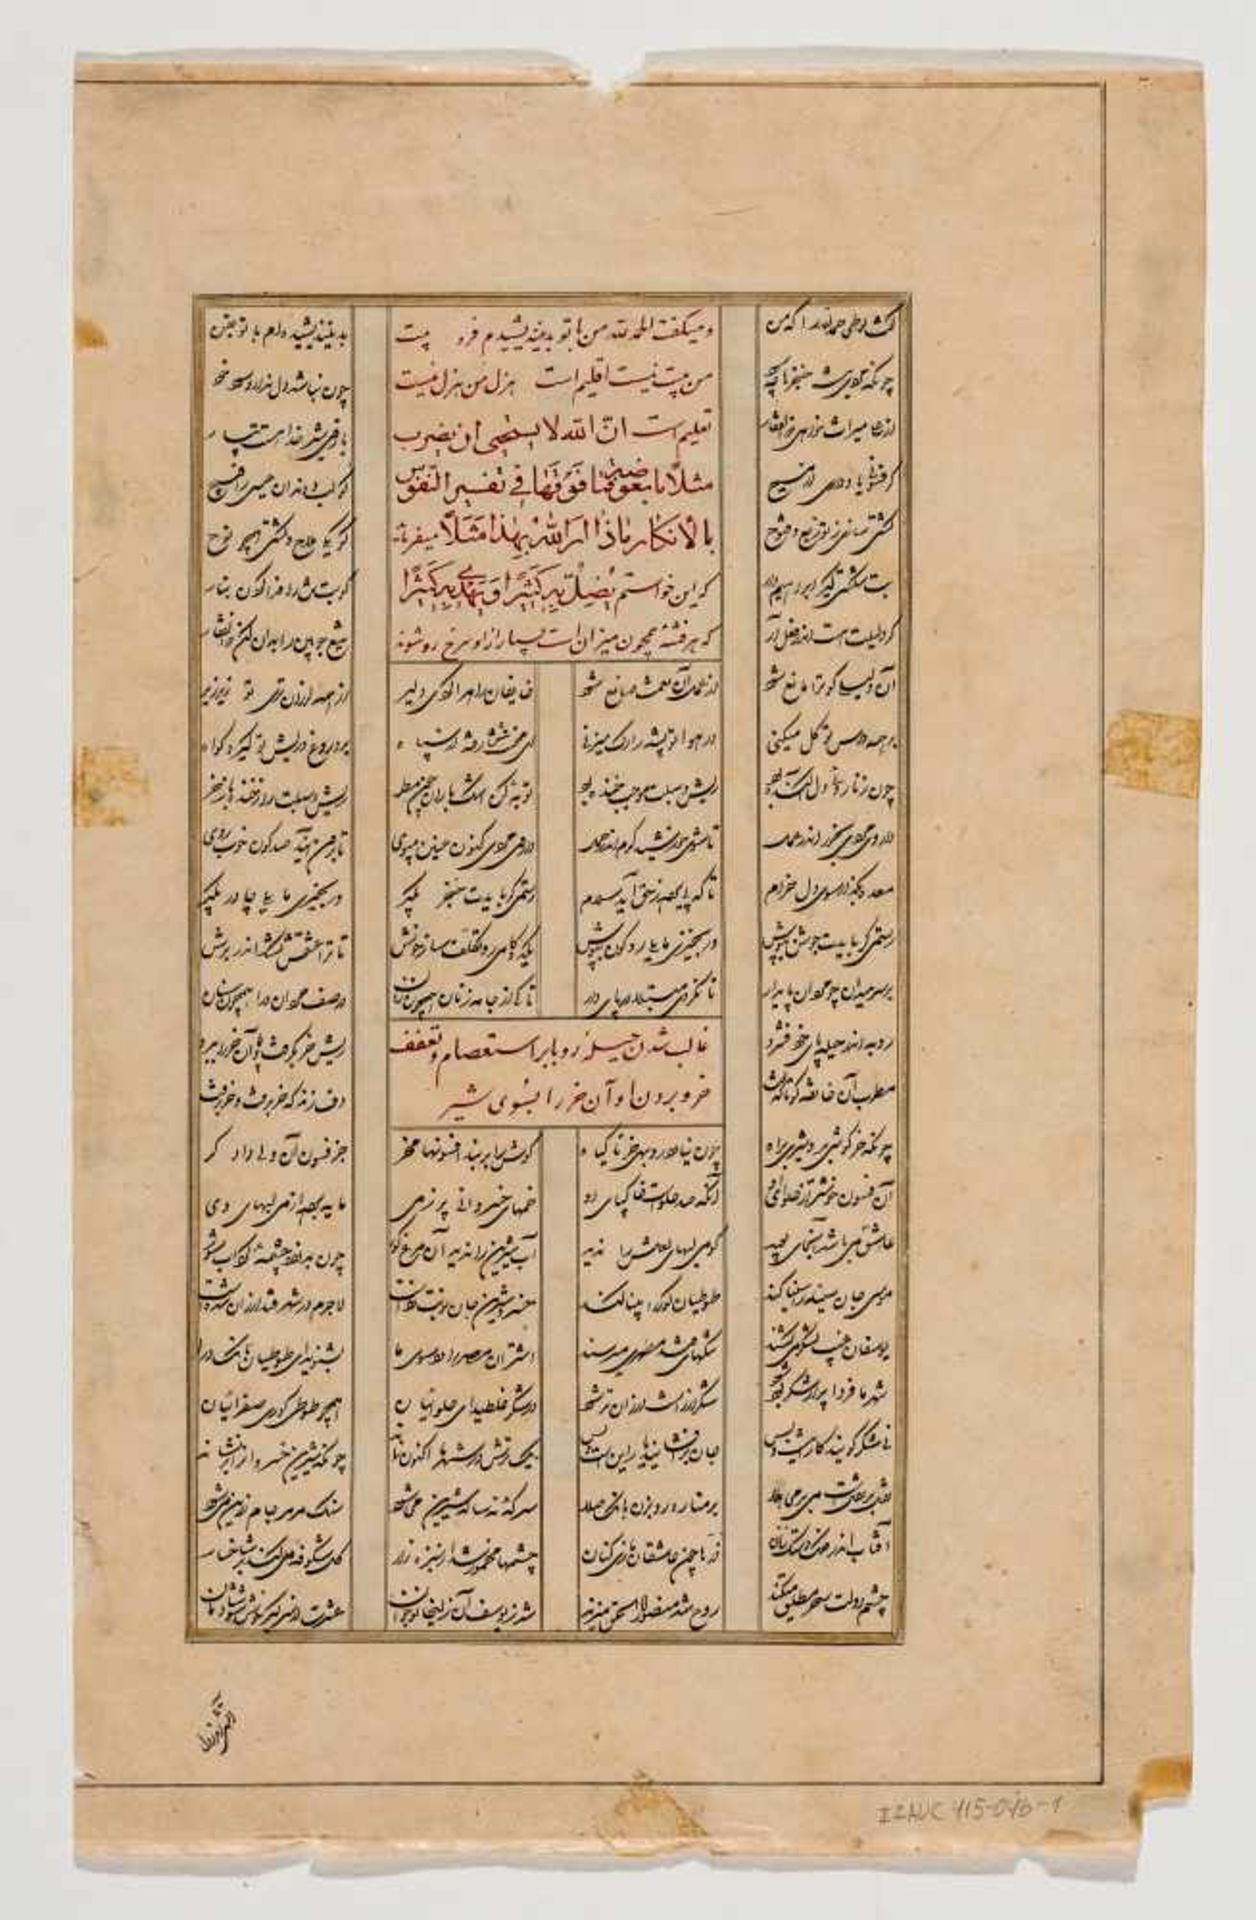 TWO INDO-PERSIAN MINIATURE PAINTINGS WITH CALLIGRAPHY - 19th CENTURYMiniature painting with colors - Image 5 of 5